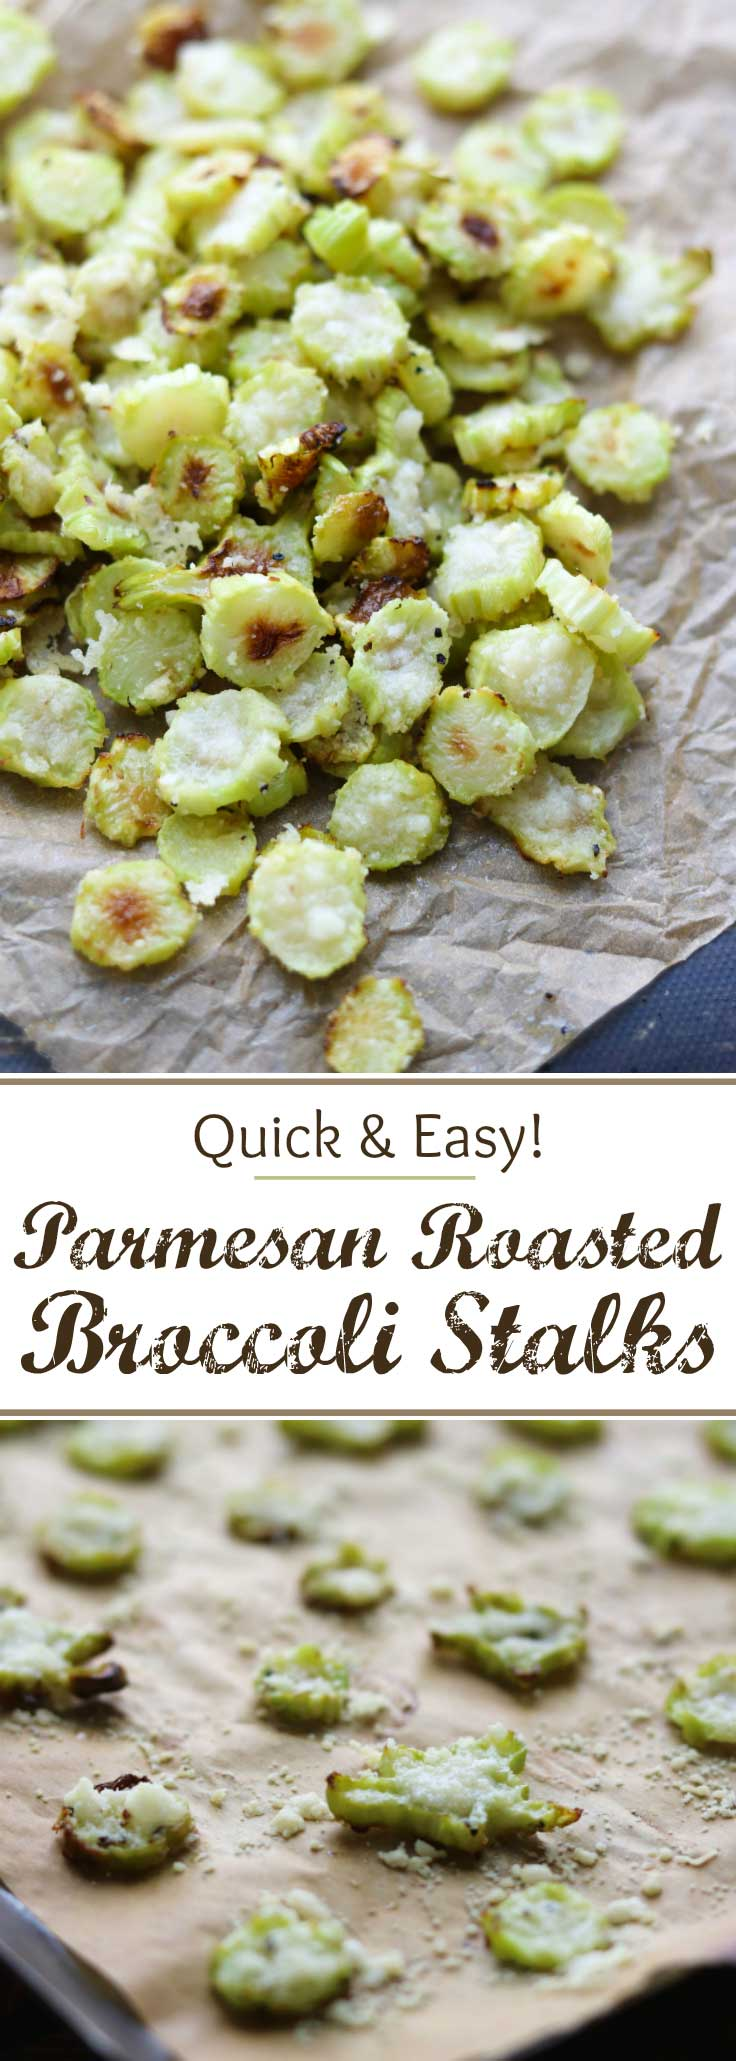 Save money – don't throw away your broccoli stalks! These Parmesan Roasted Broccoli Stalks are so easy and even kids love them! Really! Roasted Parmesan Broccoli Stems are a great healthy snack recipe, or a quick dinner side dish recipe. These oven roasted broccoli chips are quick and easy, and they deliciously use a part of the broccoli that's often discarded. Plus, you get some really cute, fun shapes, too – a perfect way to get your kids to eat more vegetables! | www.TwoHealthyKitchens.com